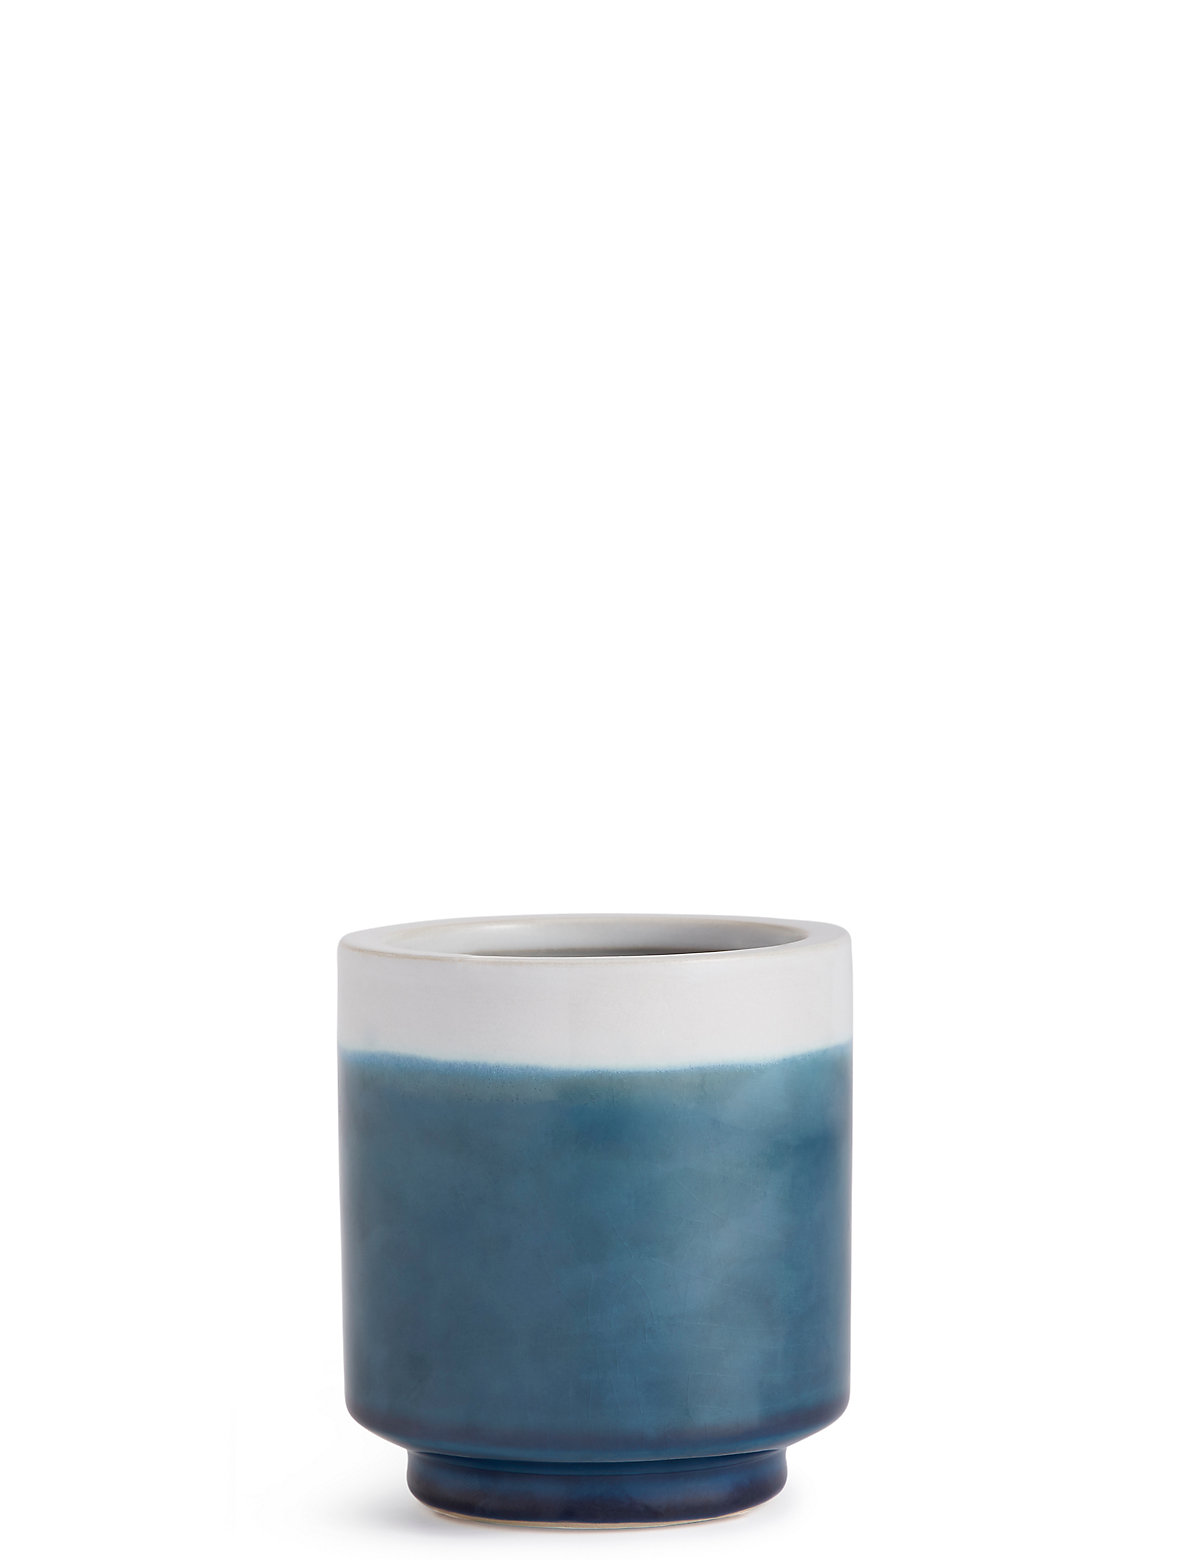 Image of 11cm Small Blue Reactive Planter